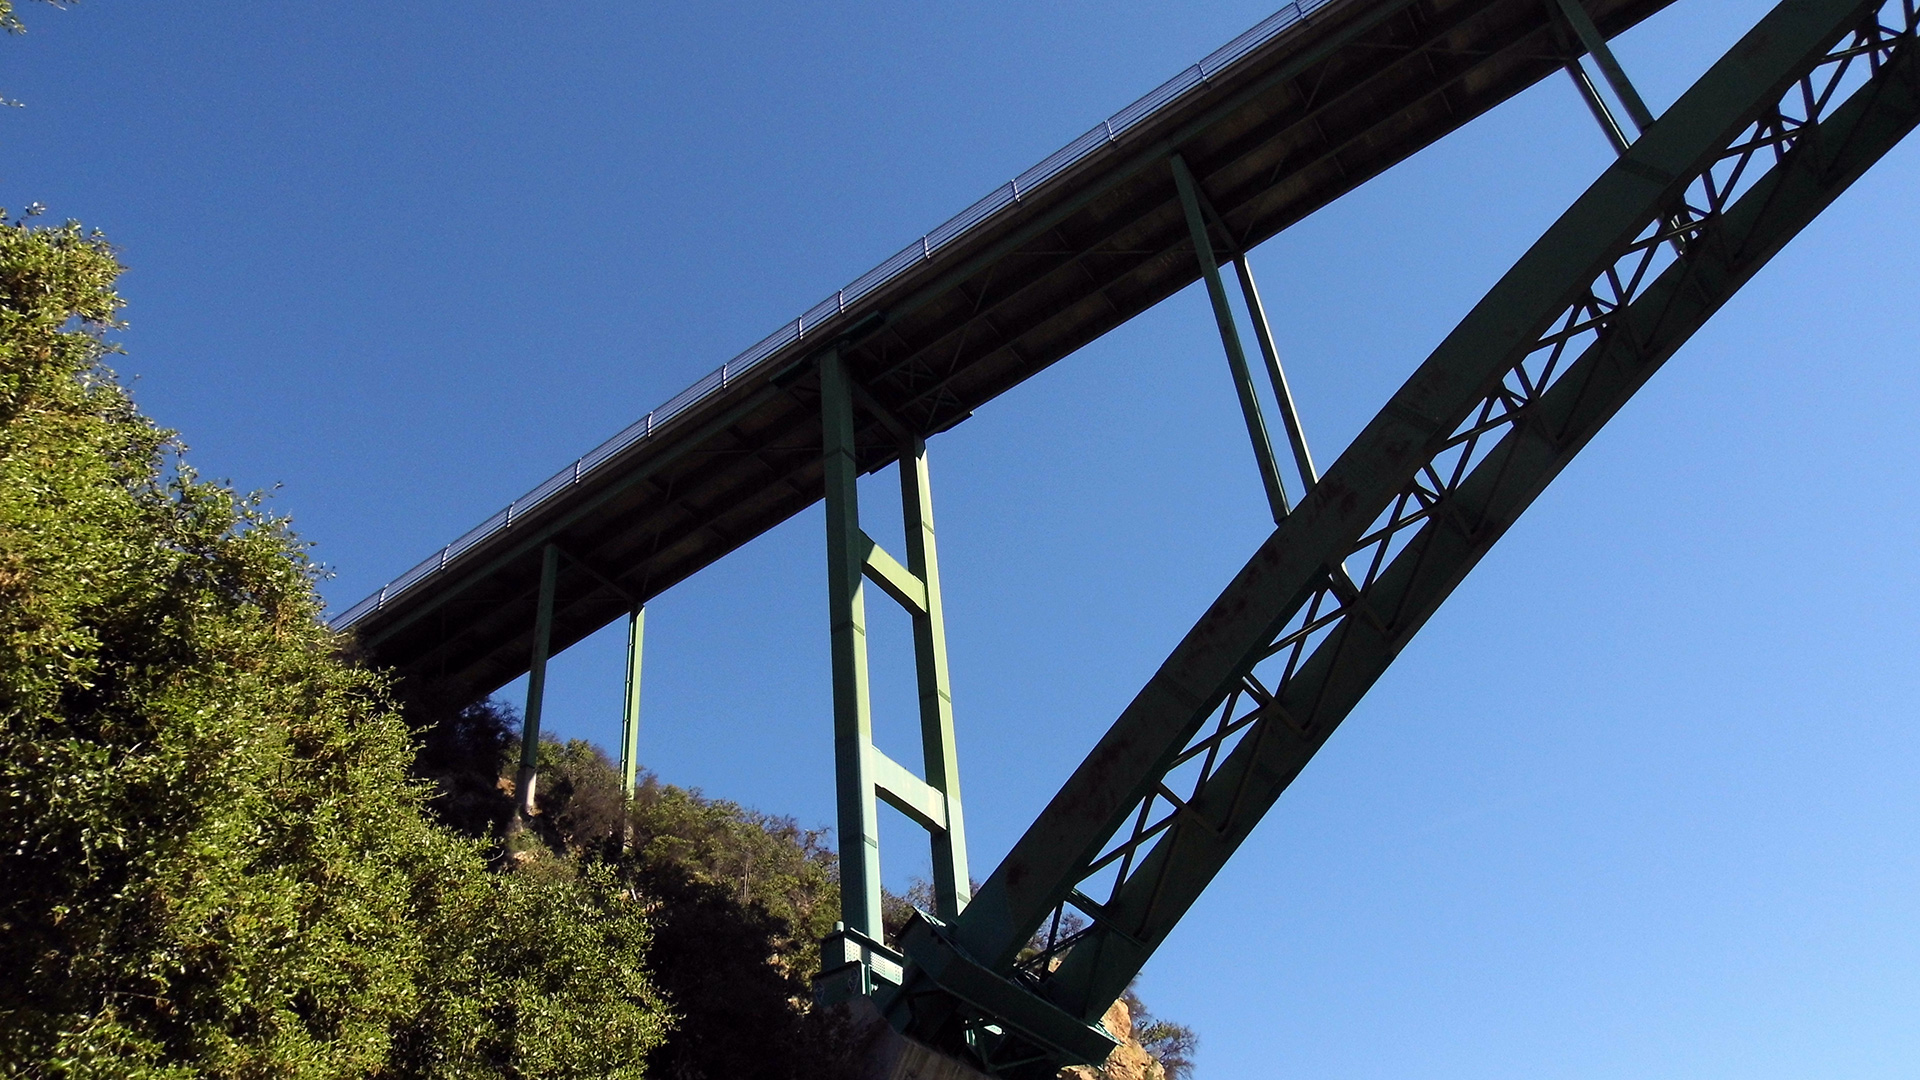 From underneath the Cold Spring Canyon Arch Bridge